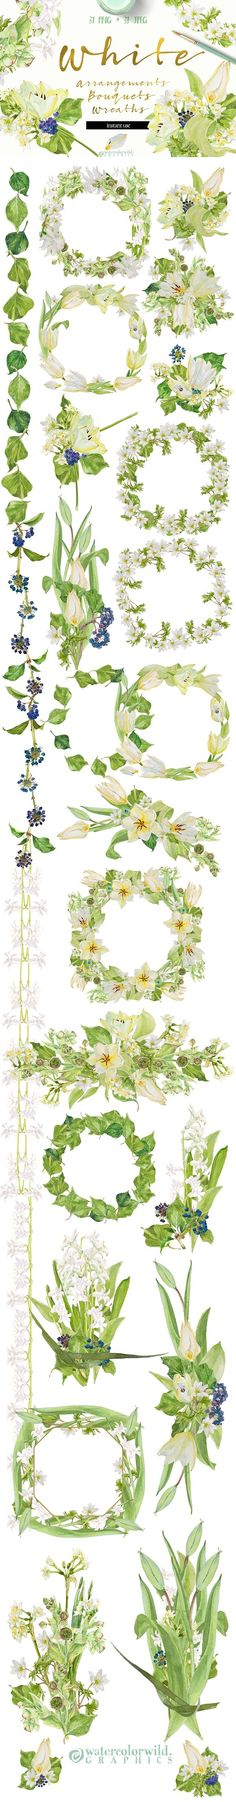 White Bouquets&Wreaths in watercolor by watercolorwild.graphics on @creativemarket